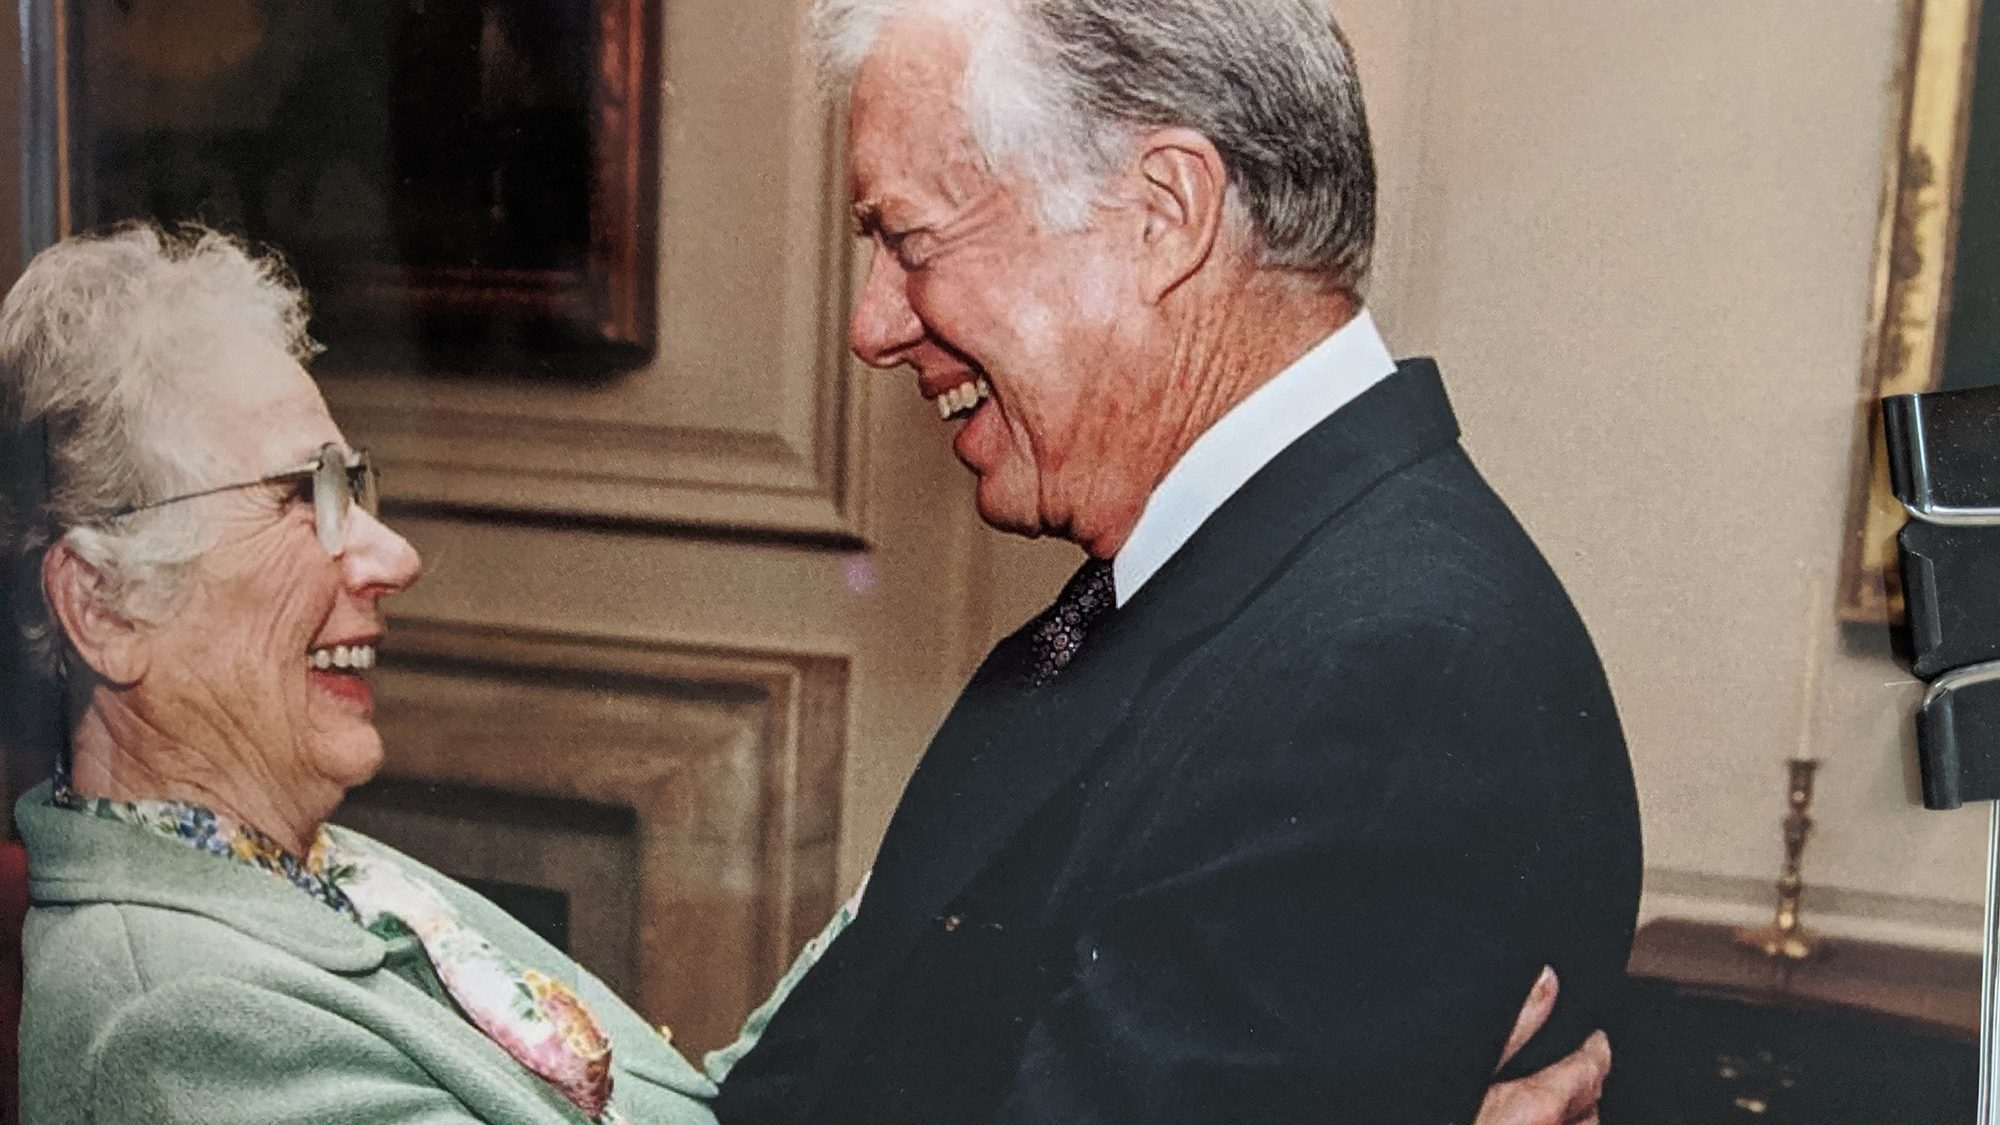 Lillian Brown and President Jimmy Carter smile at one another